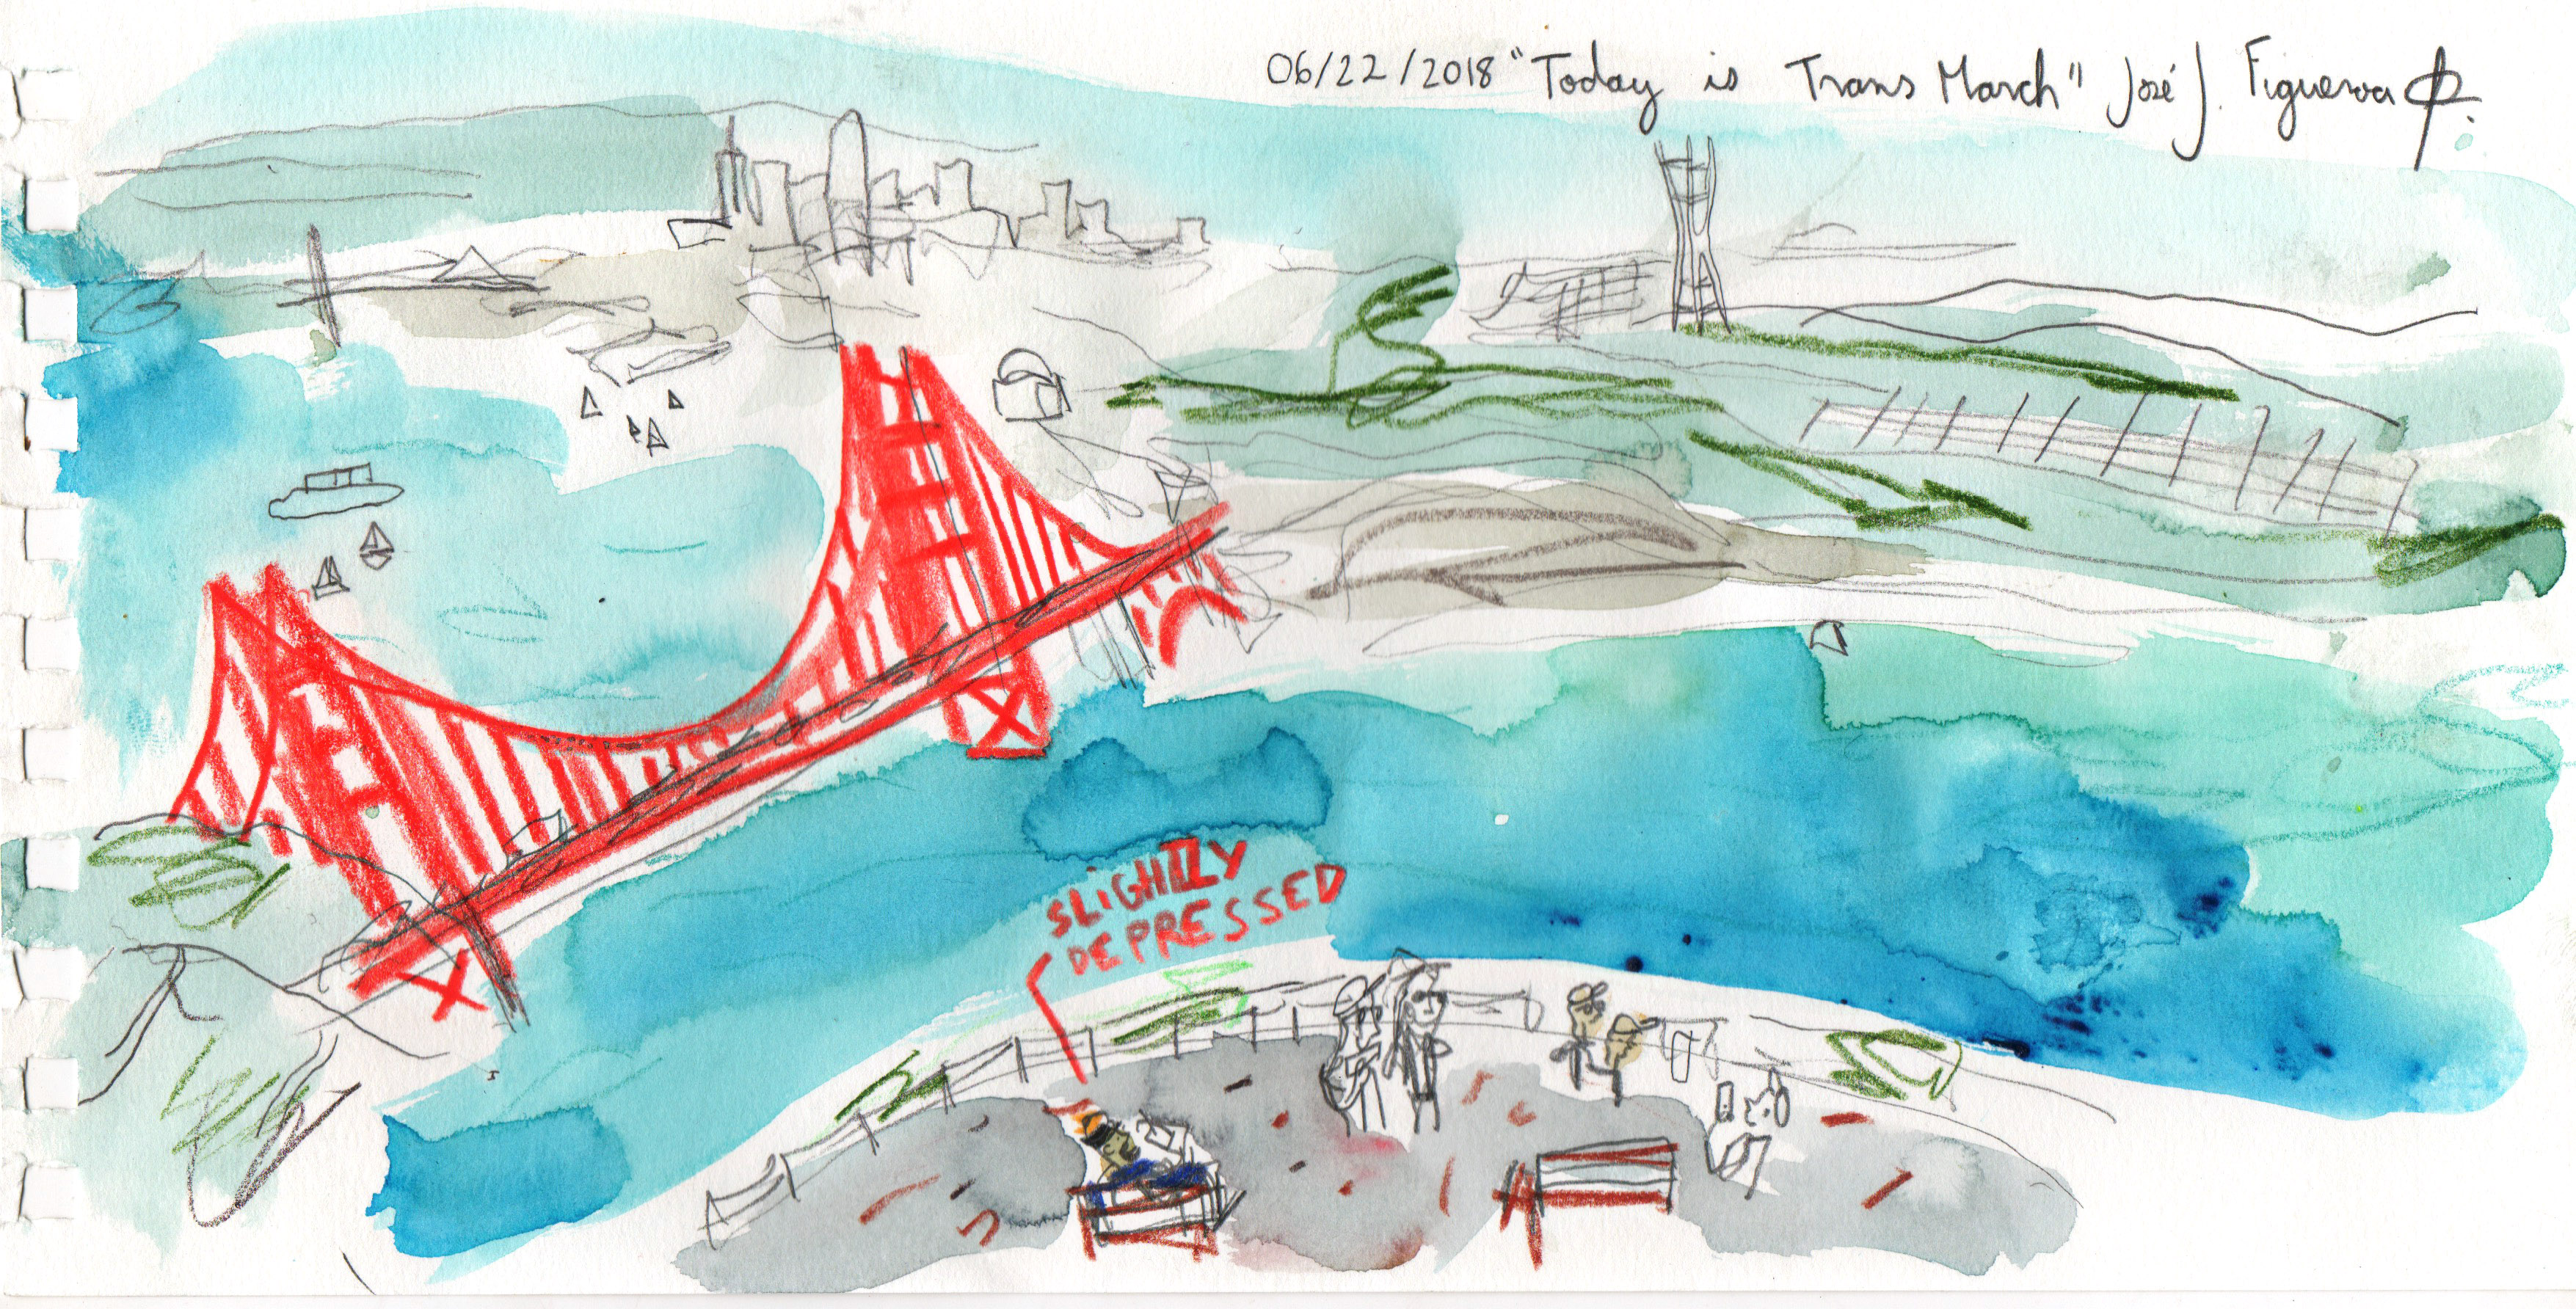 06-22-2018 today is trans march golden gate